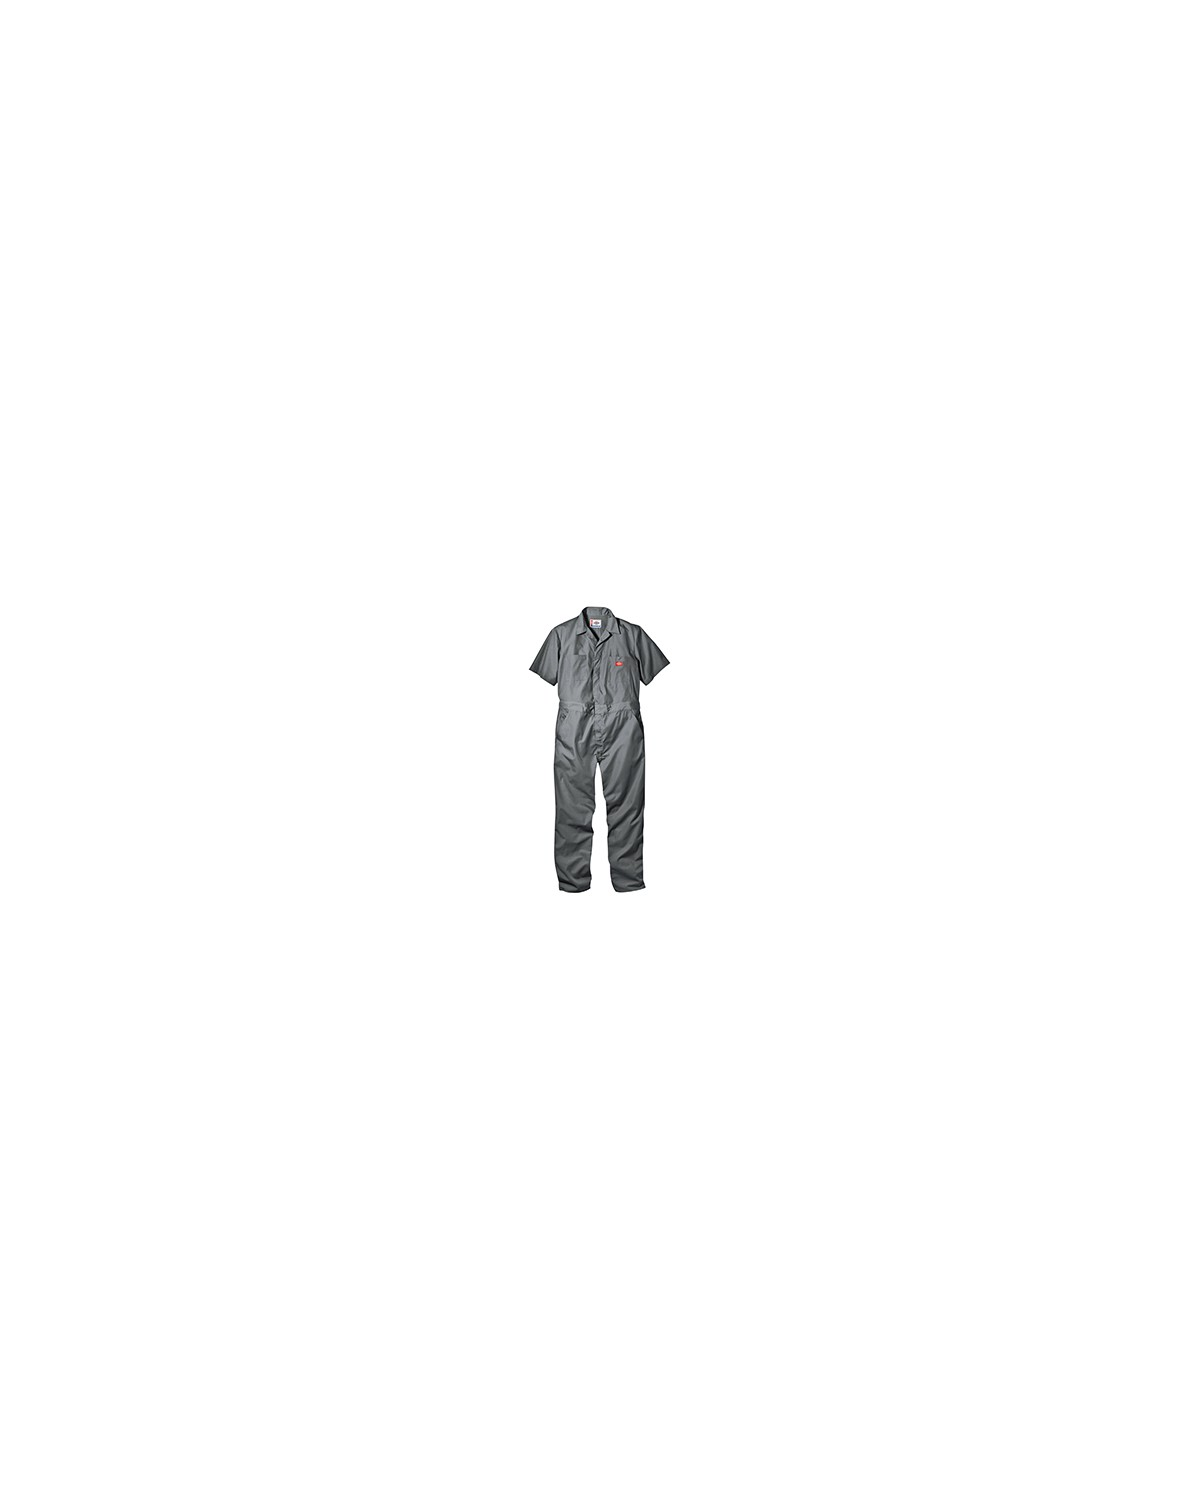 33999 Dickies GRAY L